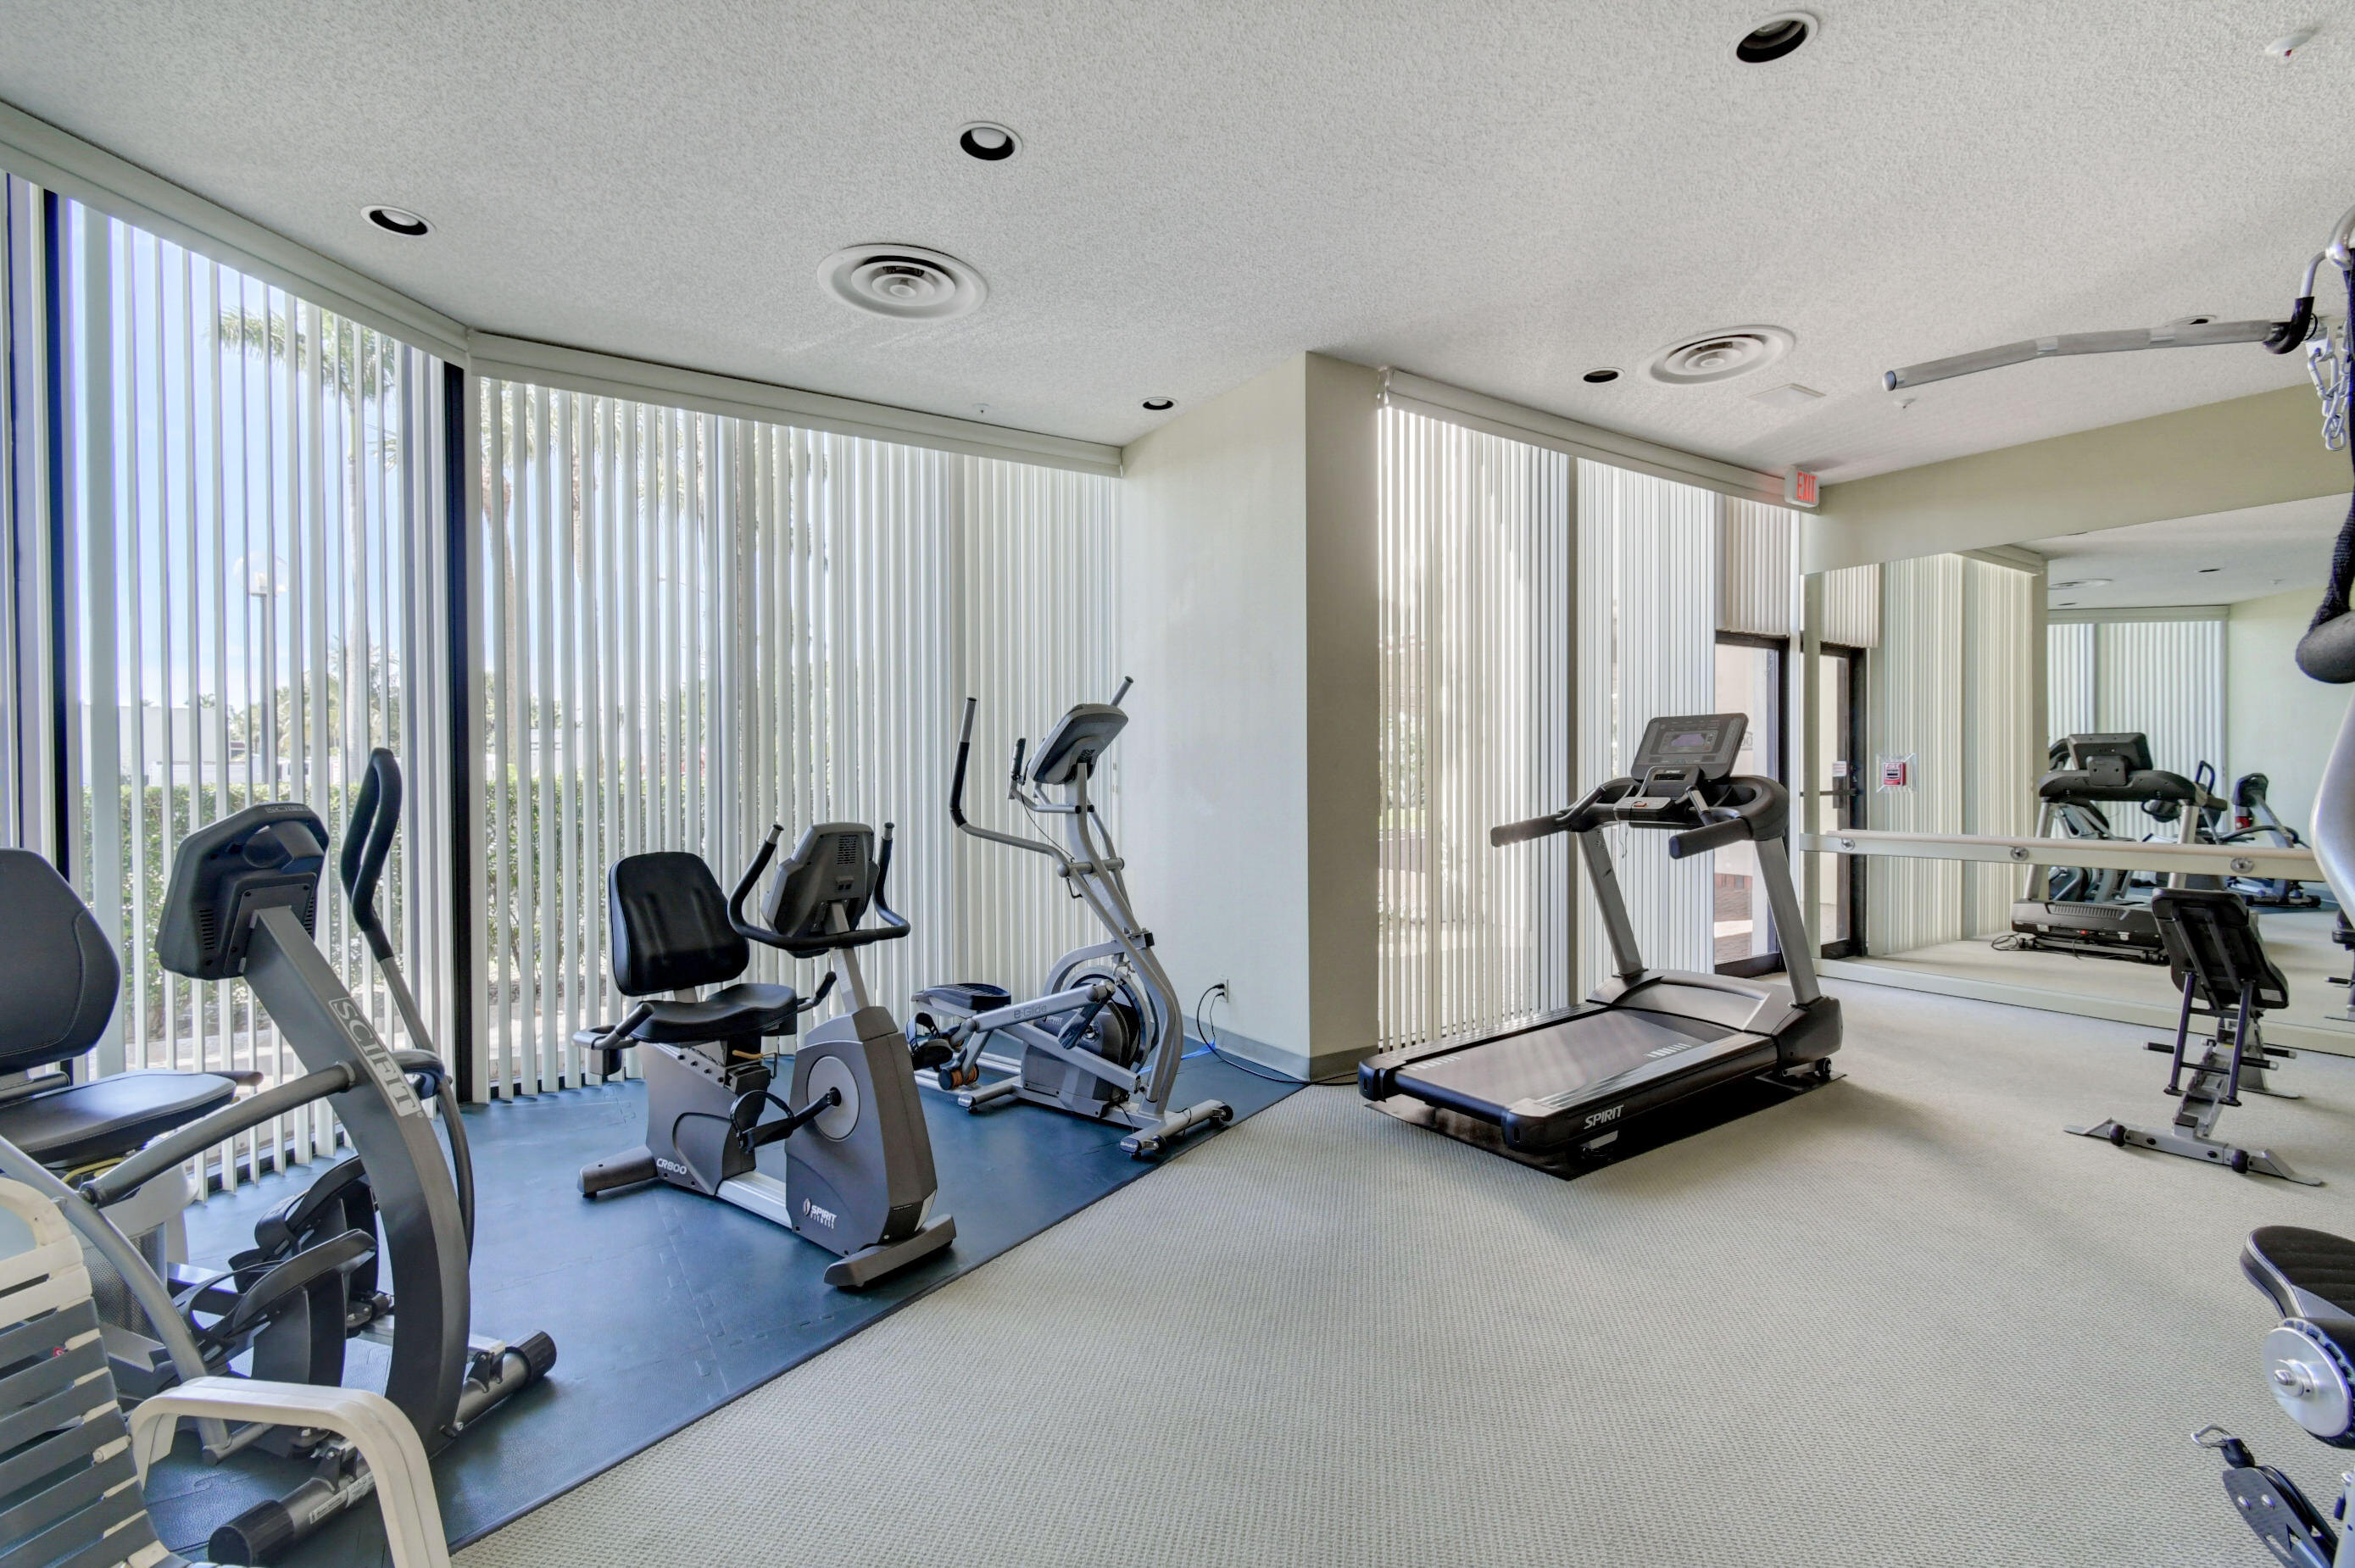 THE CONSULATE FITNESS ROOM